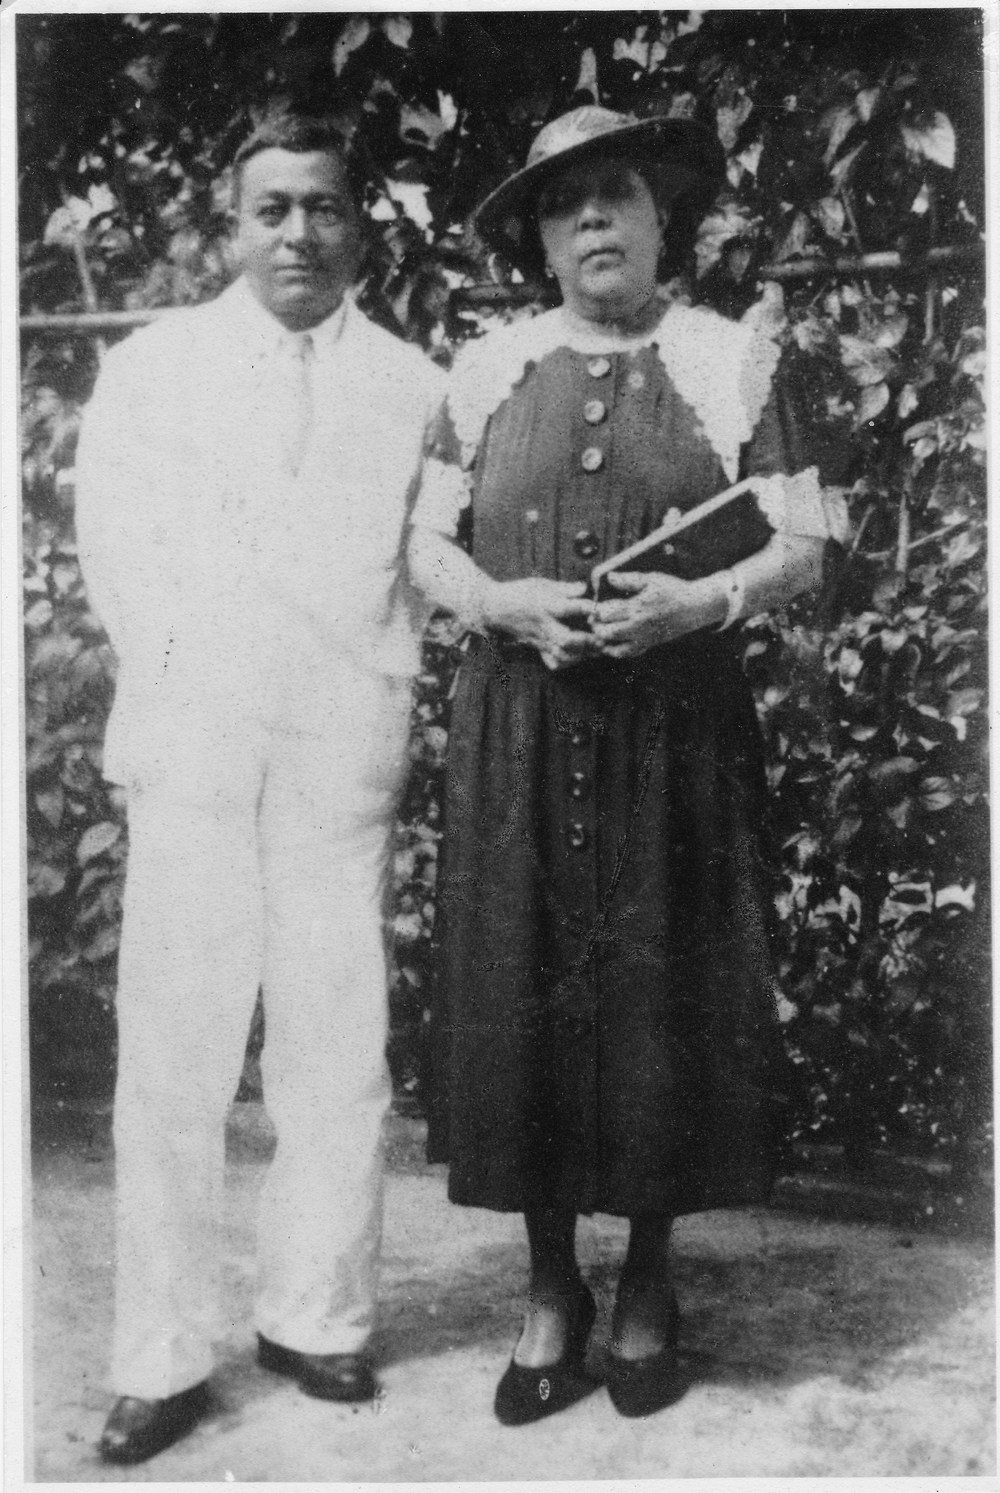 Herman (Snr) and Alice circa 1930s in Malaya